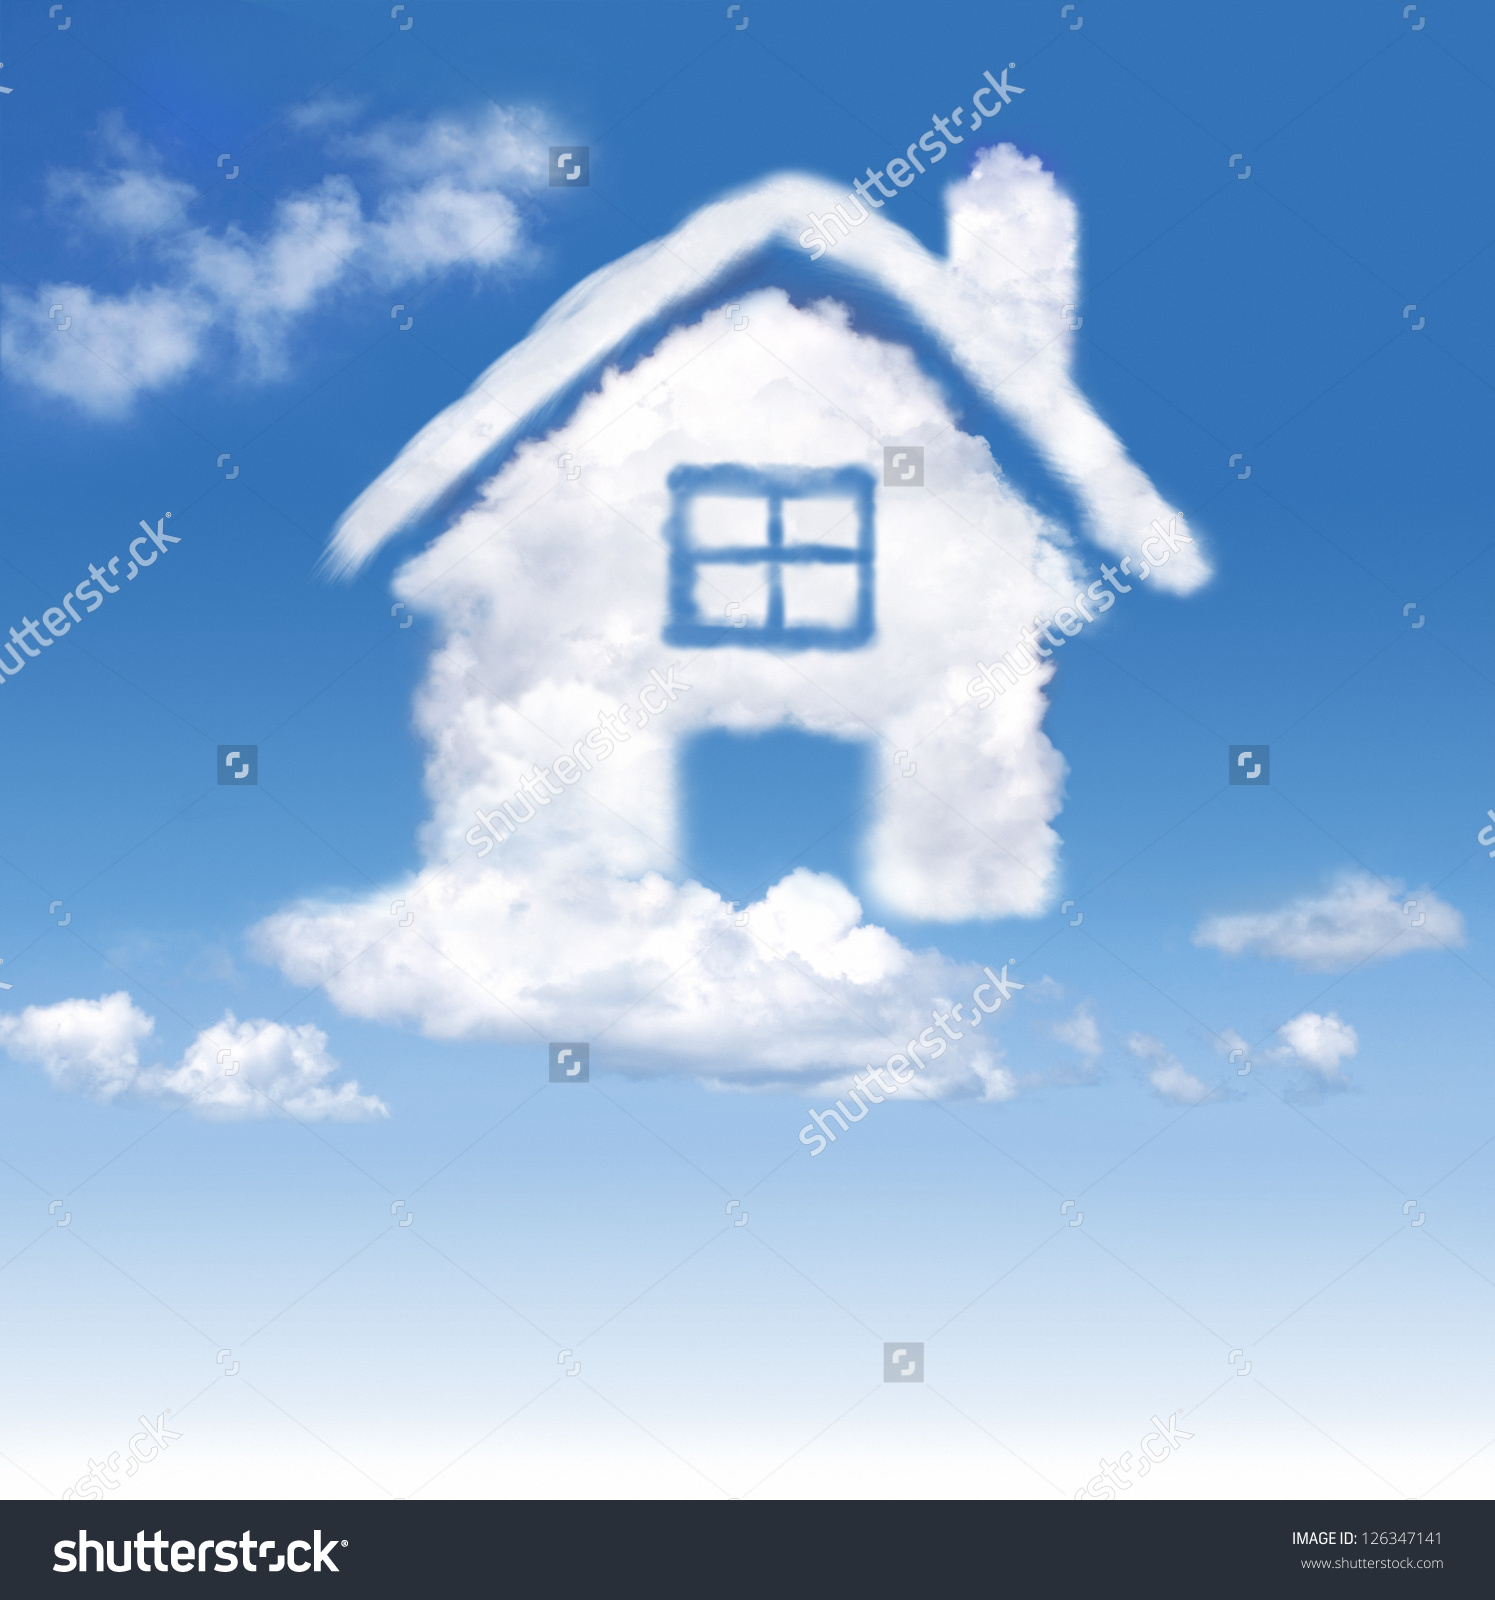 House Clouds Blue Sky On Gradientwhite Stock Photo 126347141.